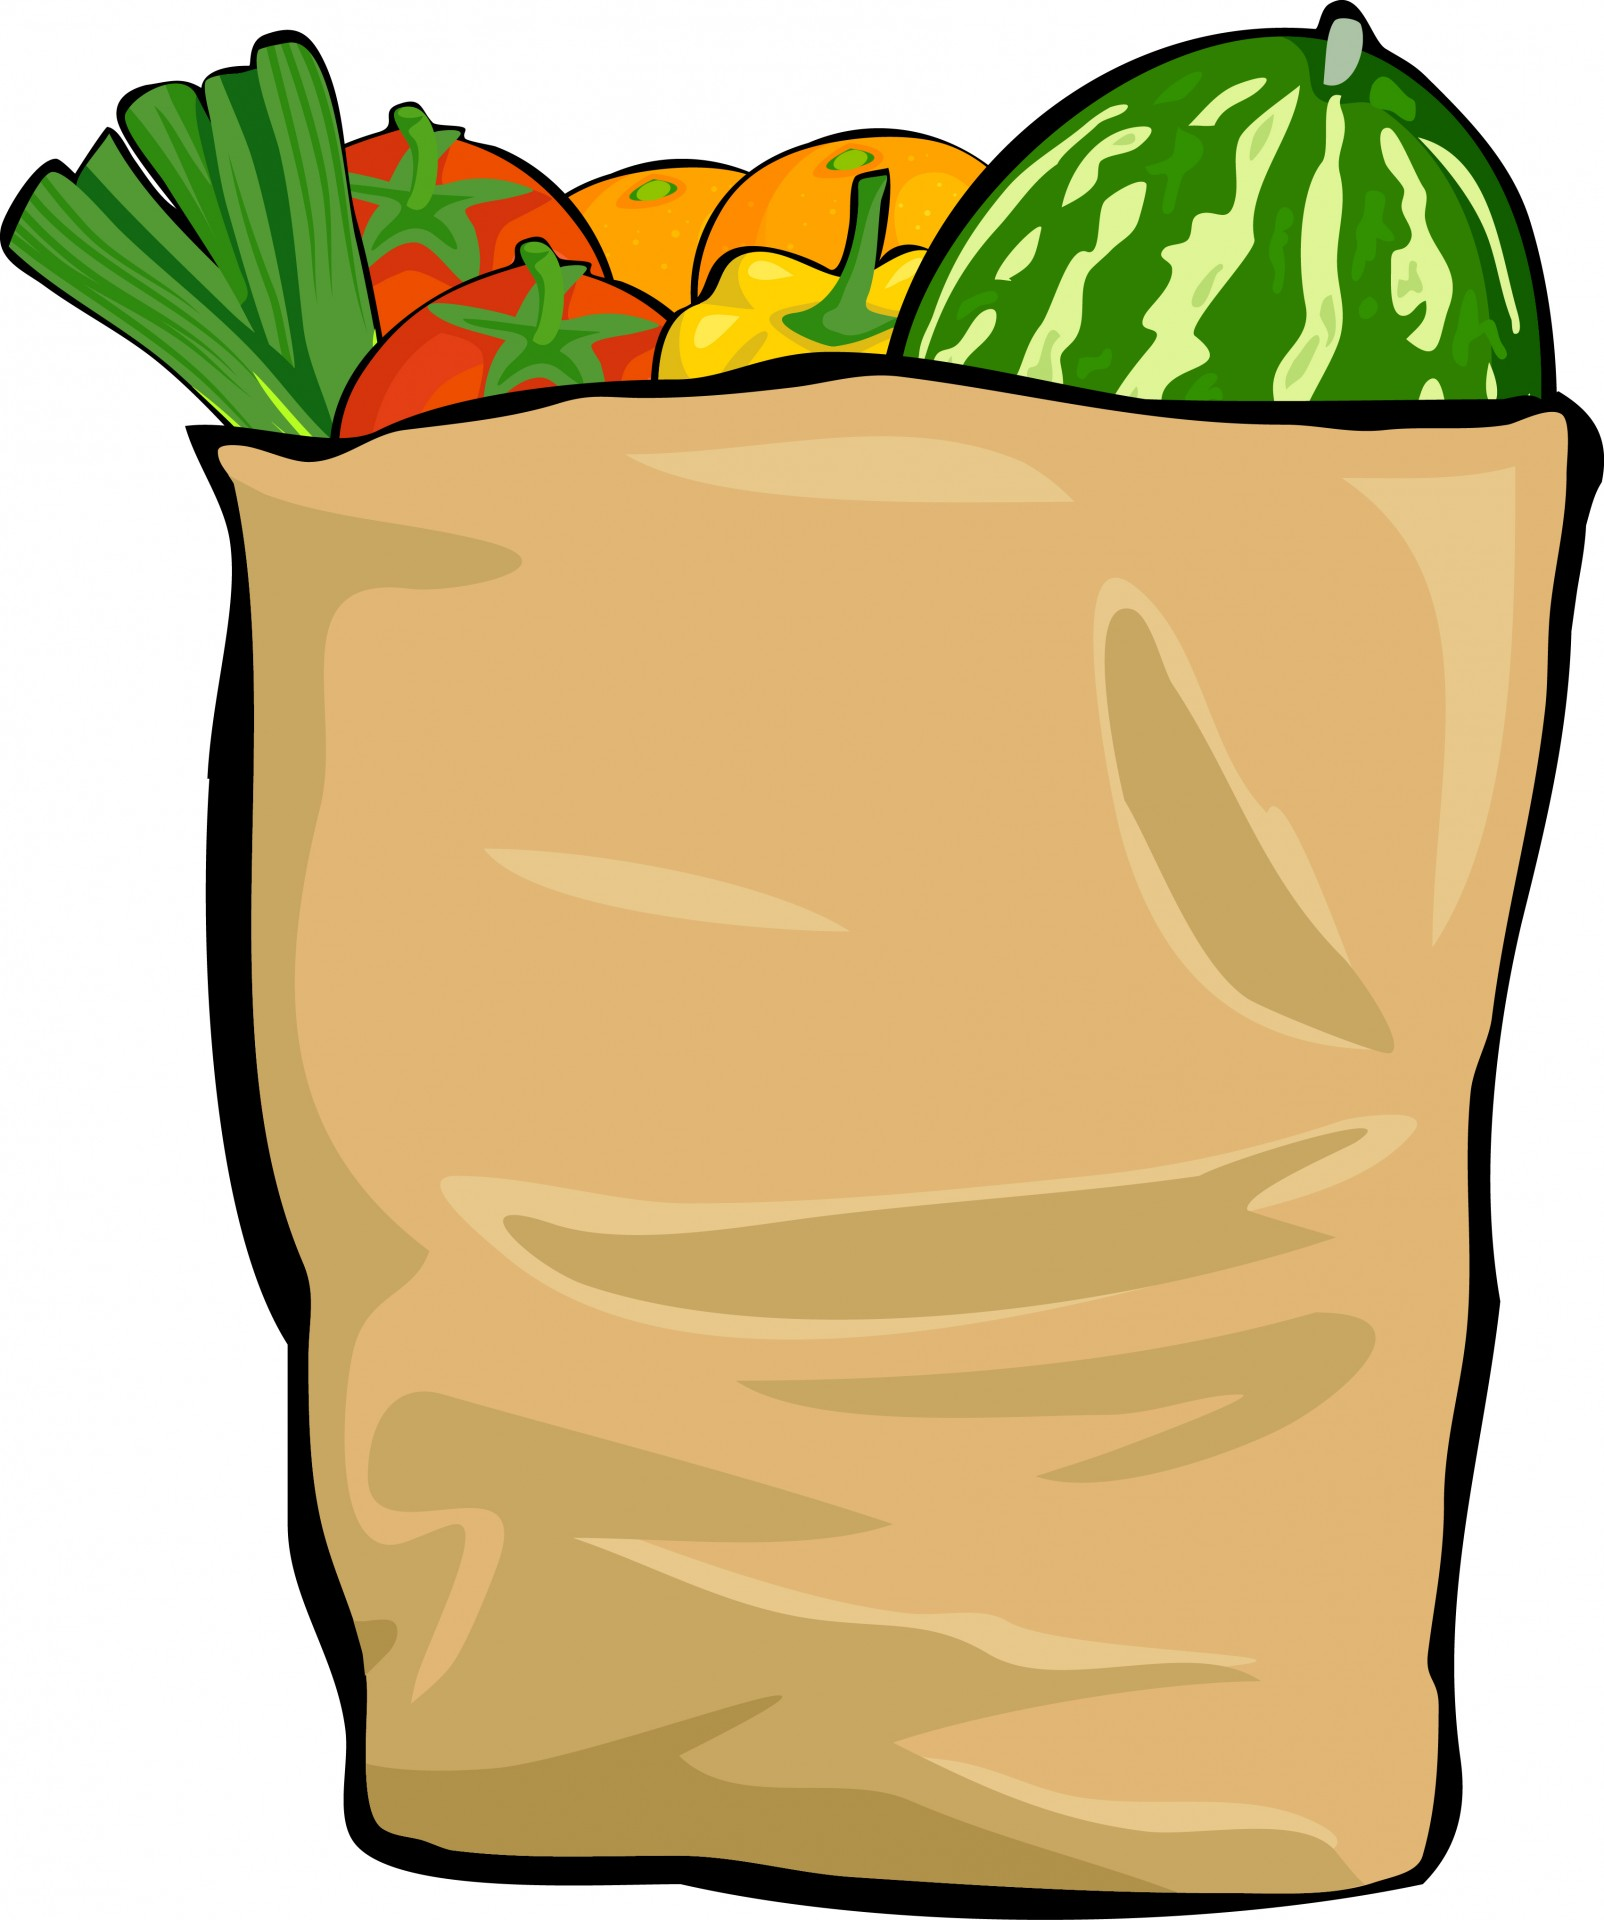 Bag clipart grocery. Free stock photo public